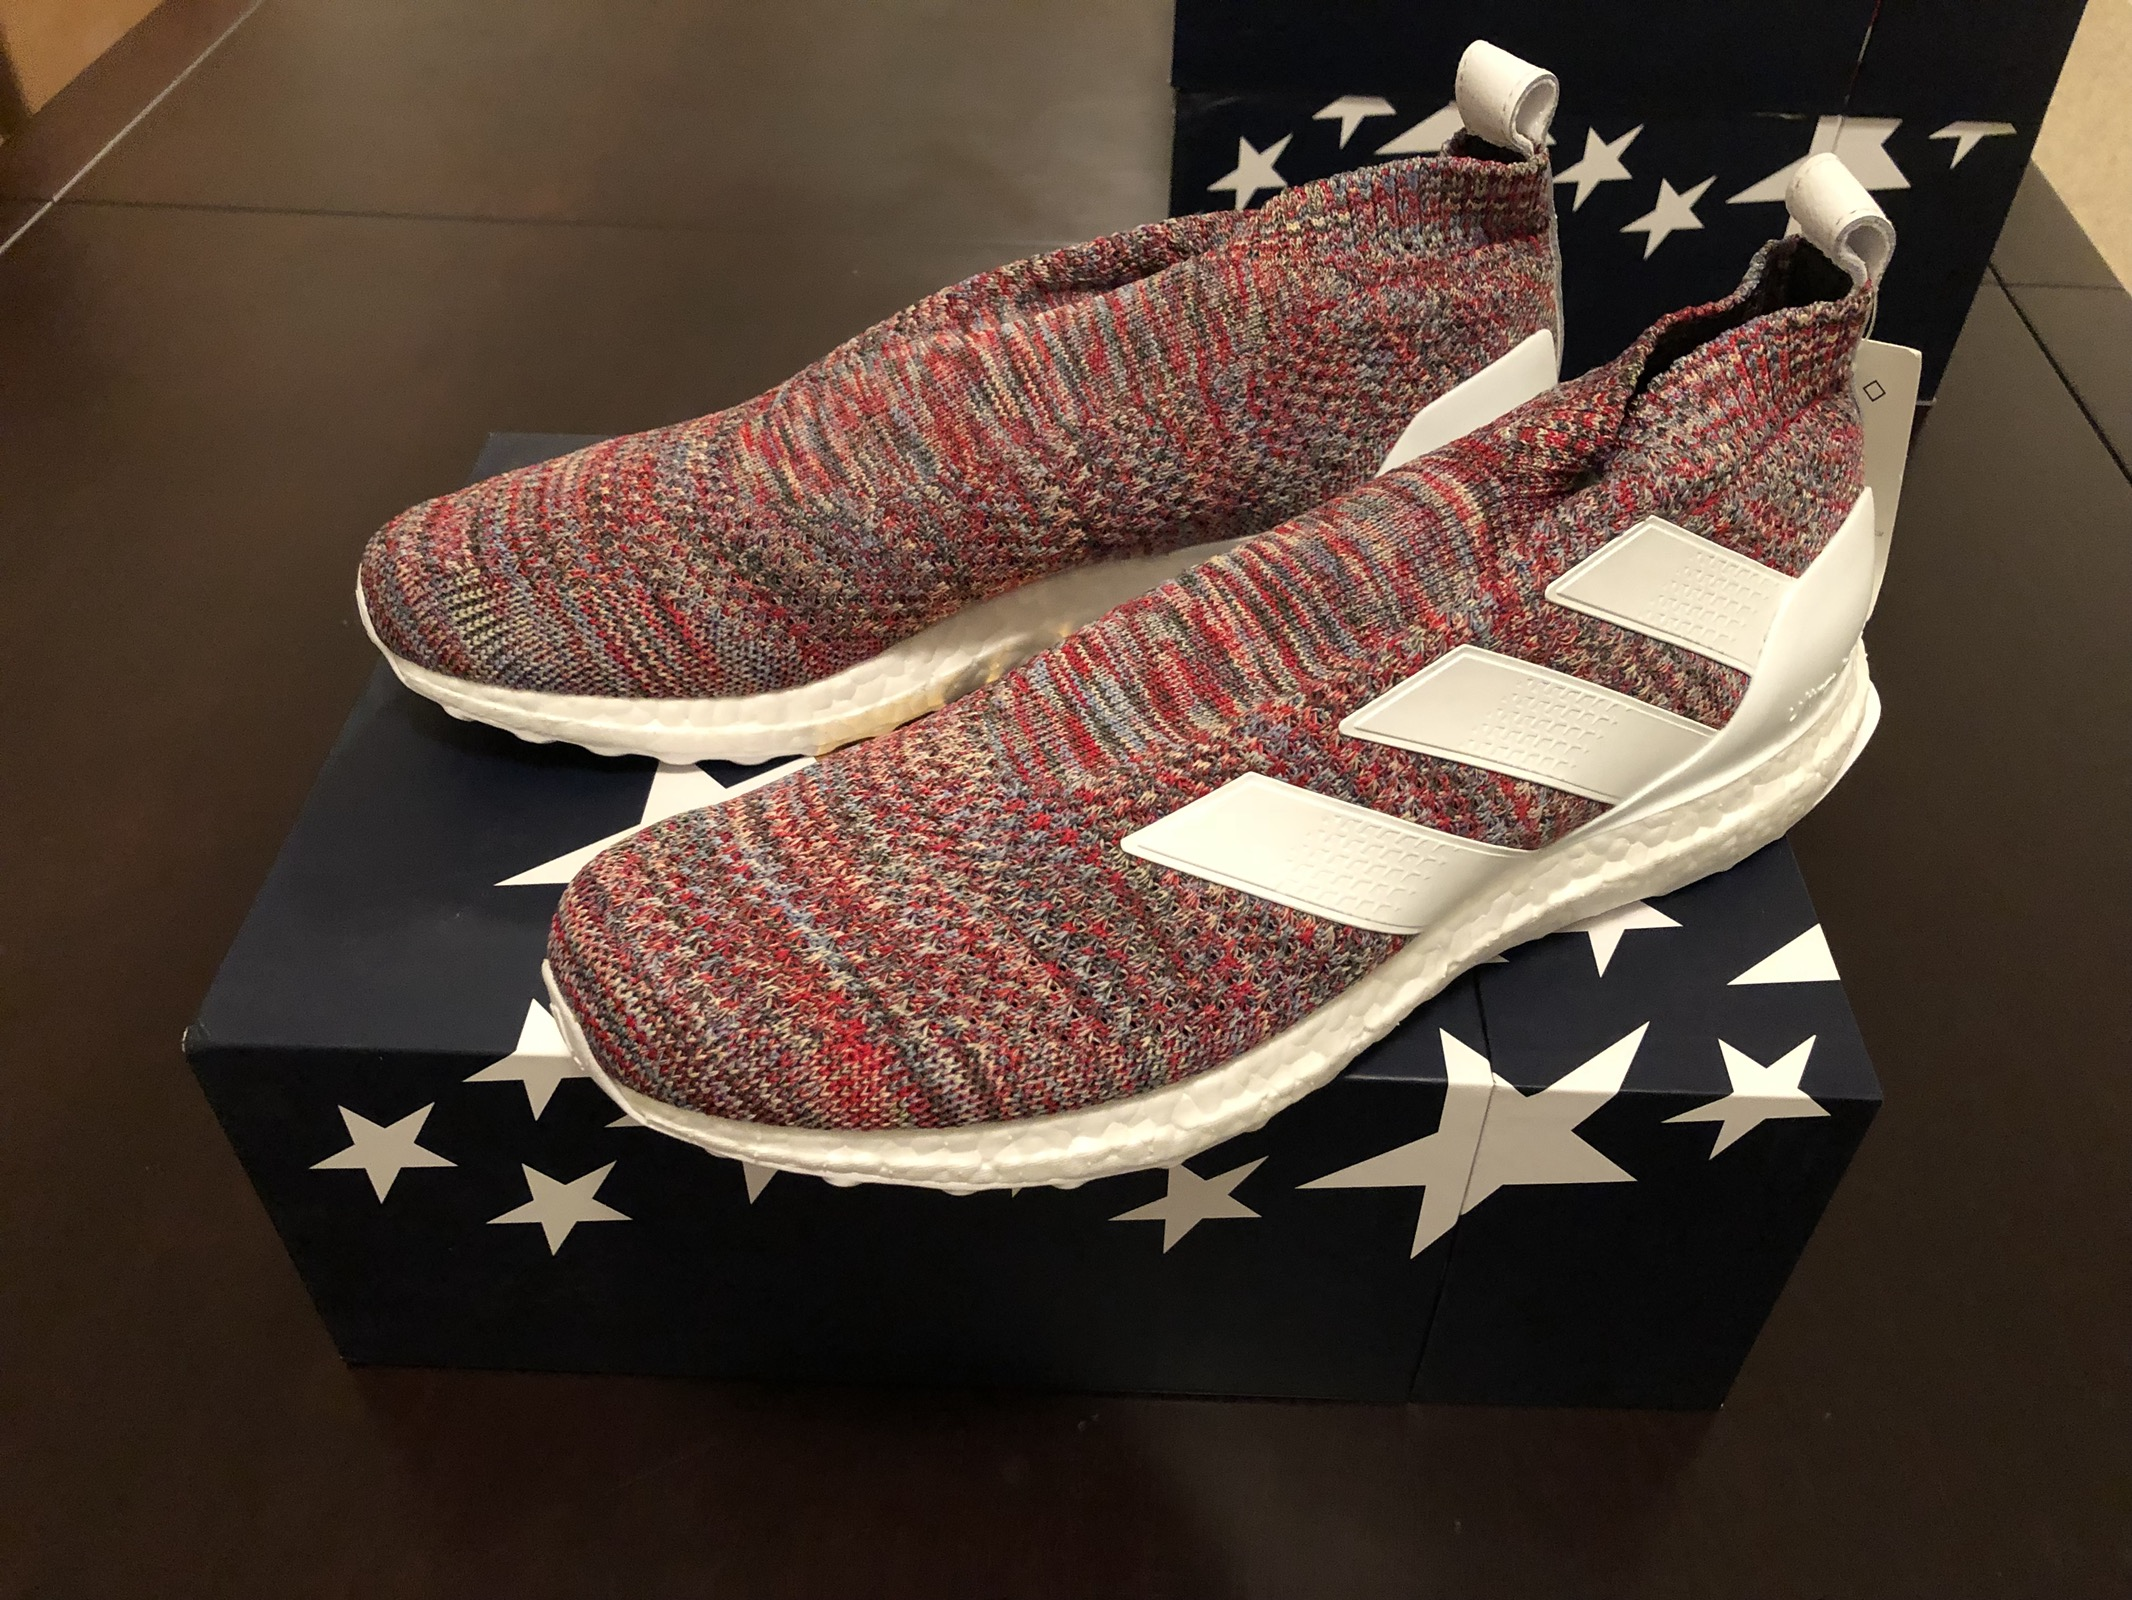 big sale 5b151 f1d1c Adidas Kith x Adidas COPA ACE 16+ Purecontrol Ultra Boost Golden Goal Size  10.5 - Low-Top Sneakers for Sale - Grailed